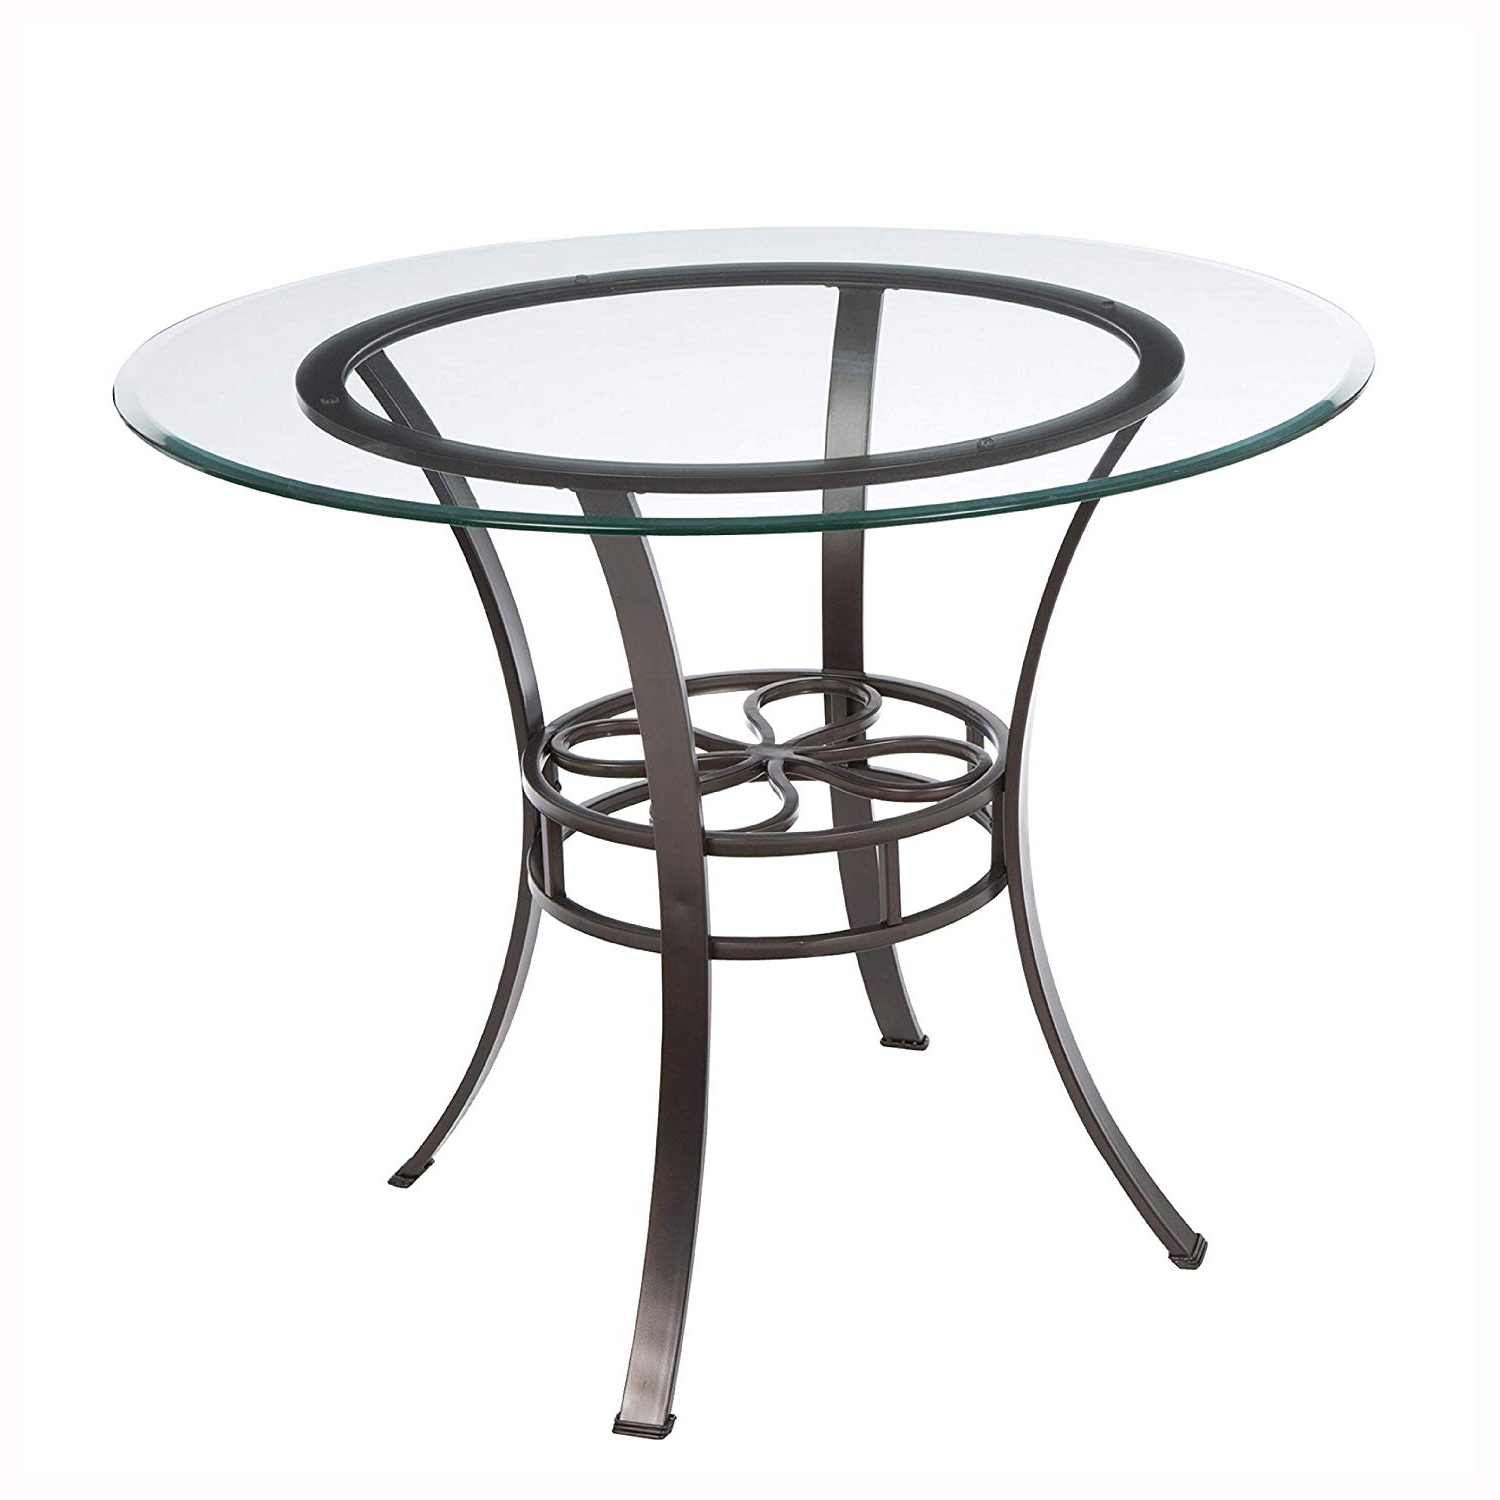 Newest Amazon – Round Glass Top Dining Table With Durable Metal For Modern Round Glass Top Dining Tables (View 21 of 25)